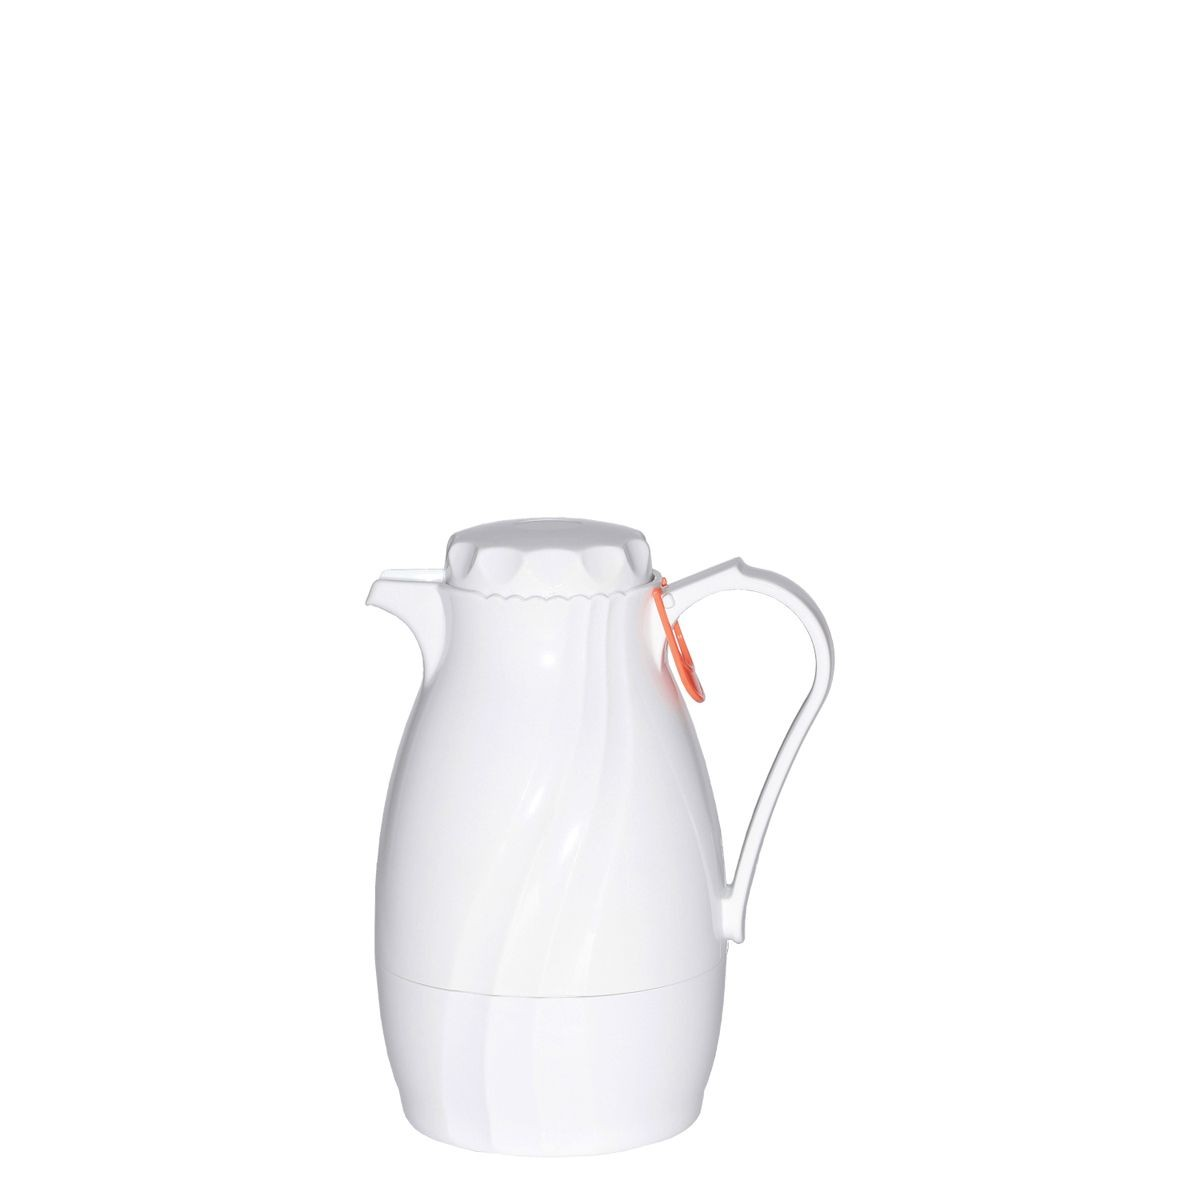 Service Ideas TNS40WH Twist N Serve White Server, 1.2 Liter